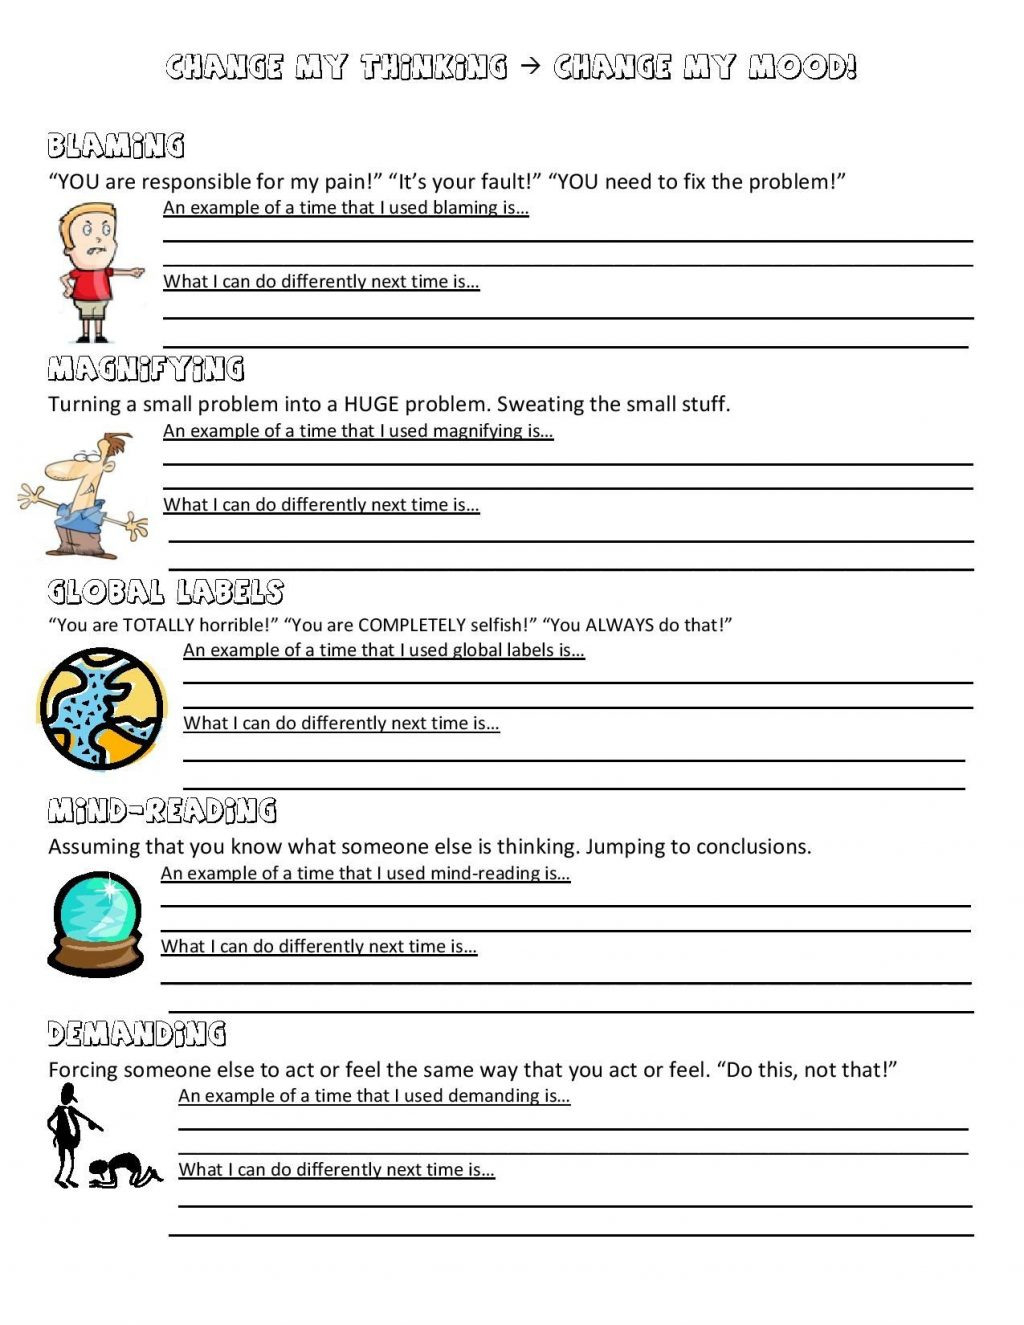 Worksheet Ideas Conflict Resolution For Teenagers